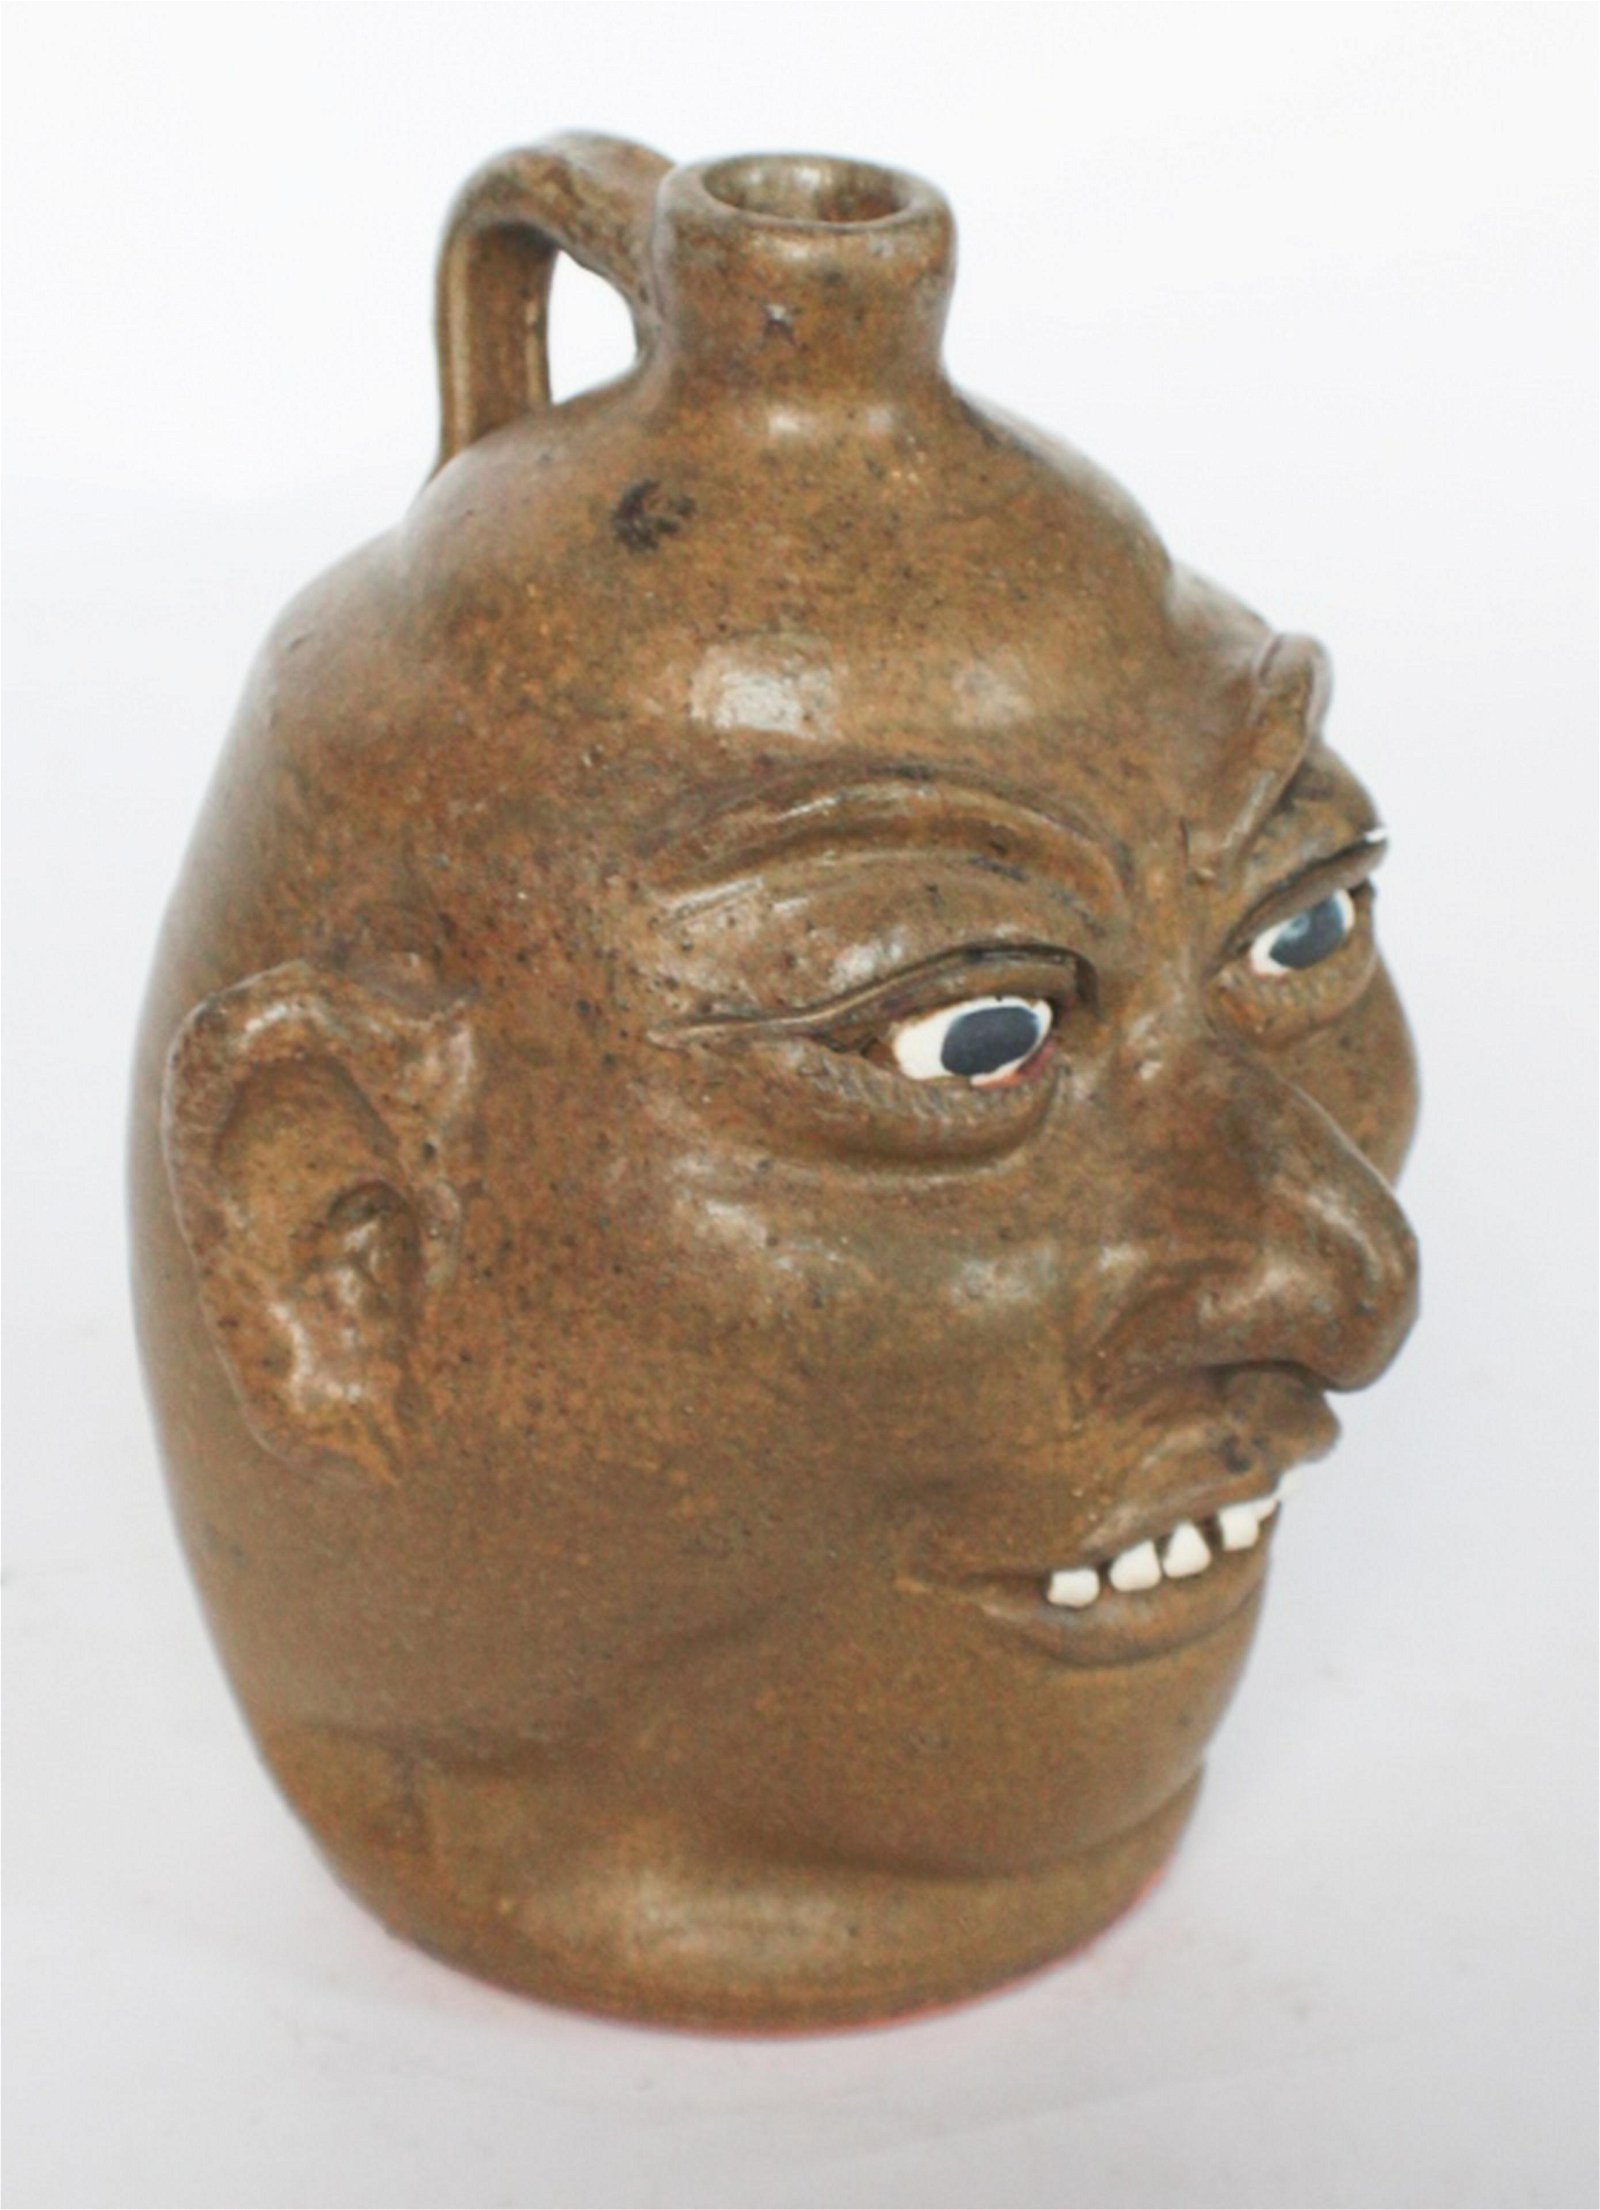 Southern Stoneware Face Jug by Lanier Meaders